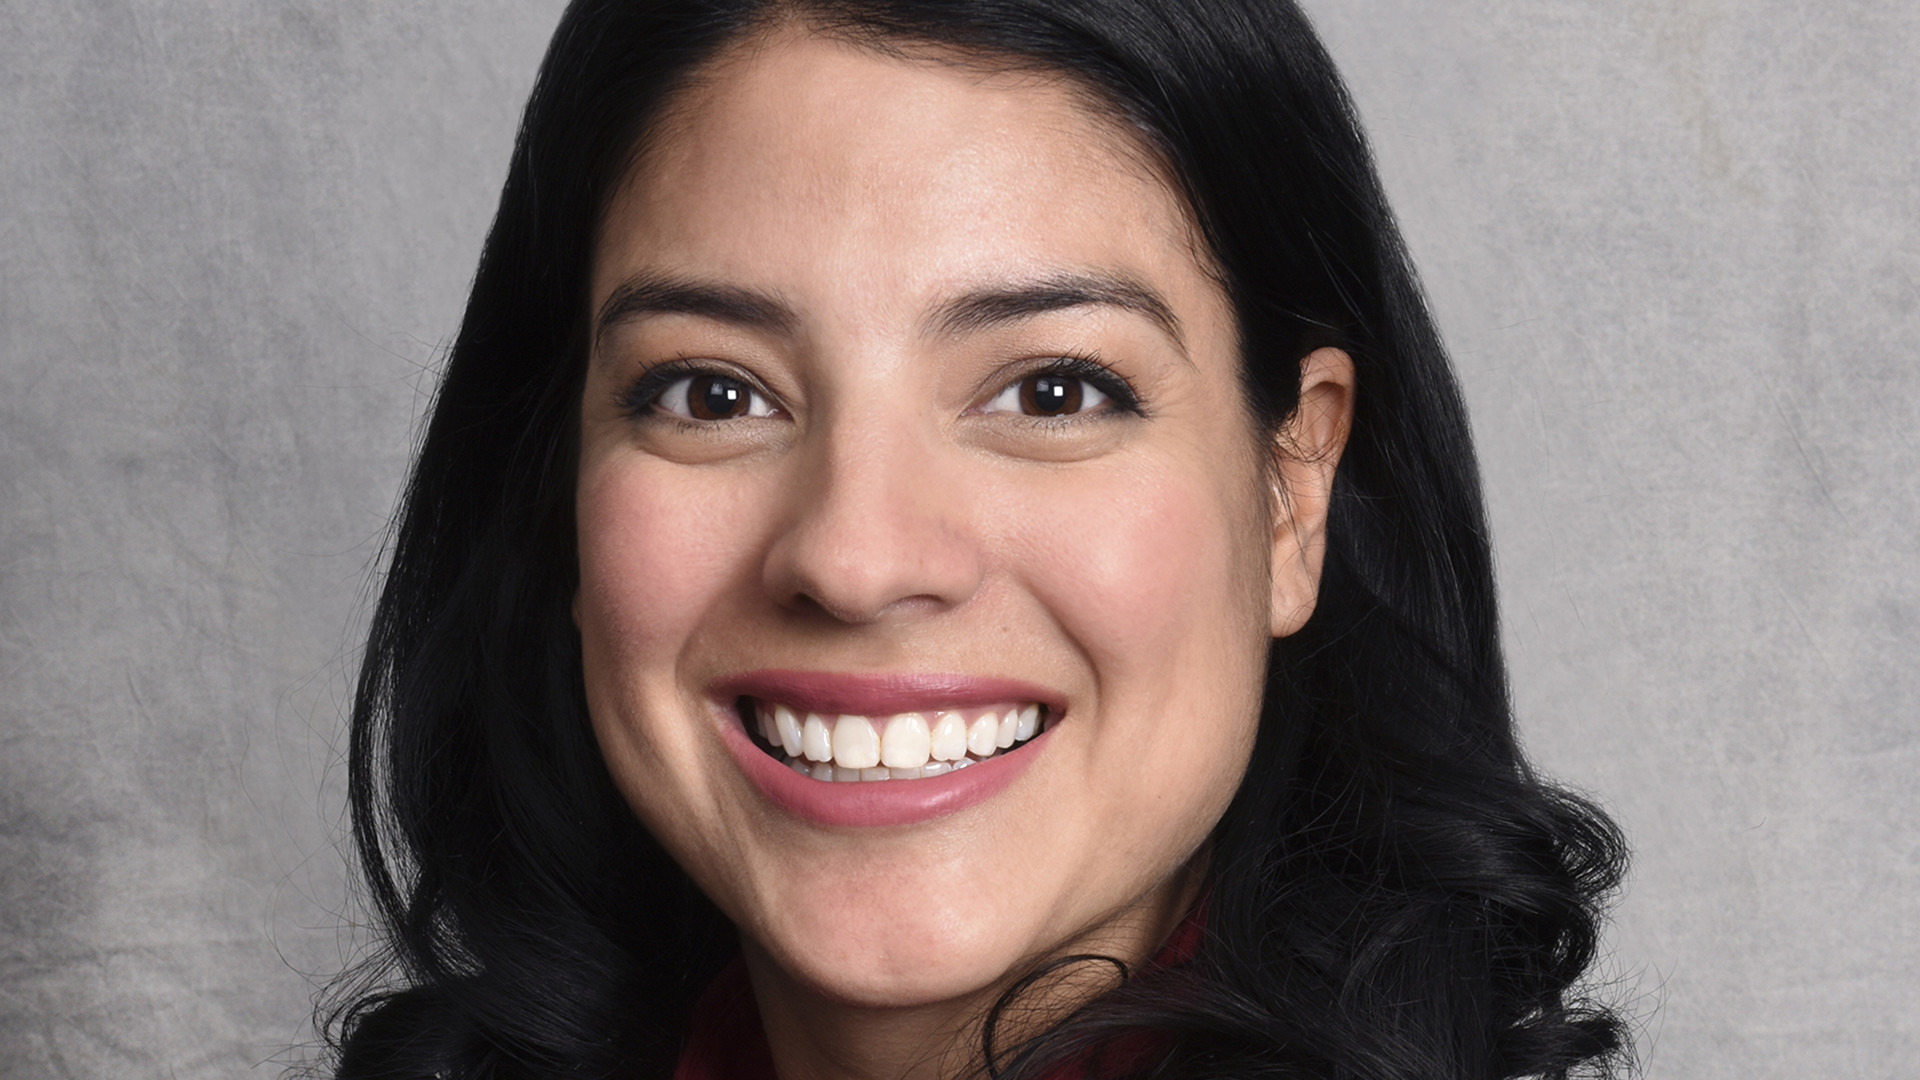 Mayor Emanuel Picks 31 Year Old City Council Liaison For City Clerk